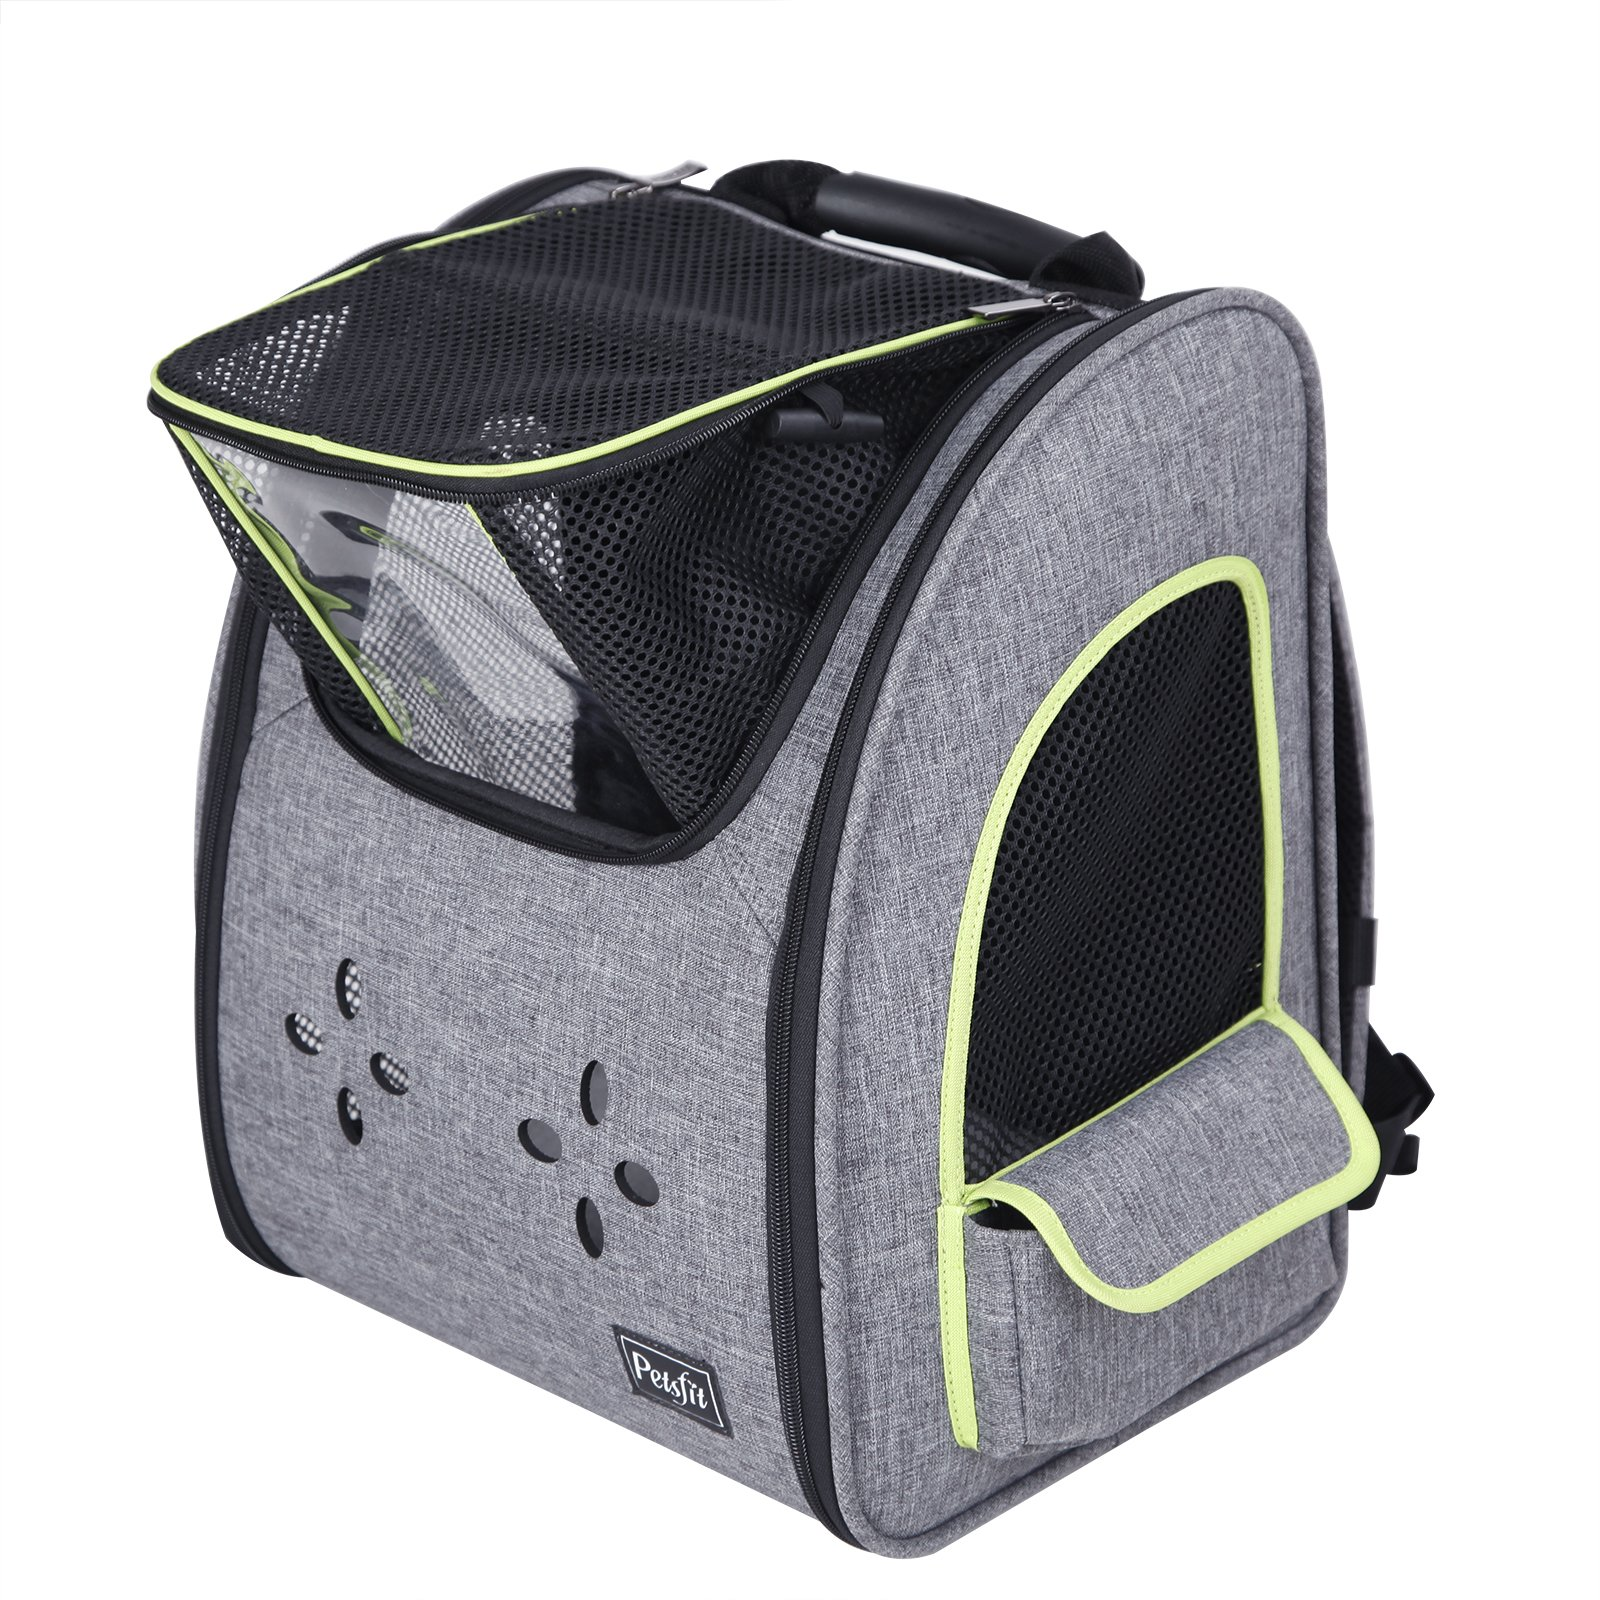 Petsfit Dogs Carriers Backpack for Cat/Dog/Guinea Pig/Bunny Durable and Comfortable Pet Bag by Petsfit